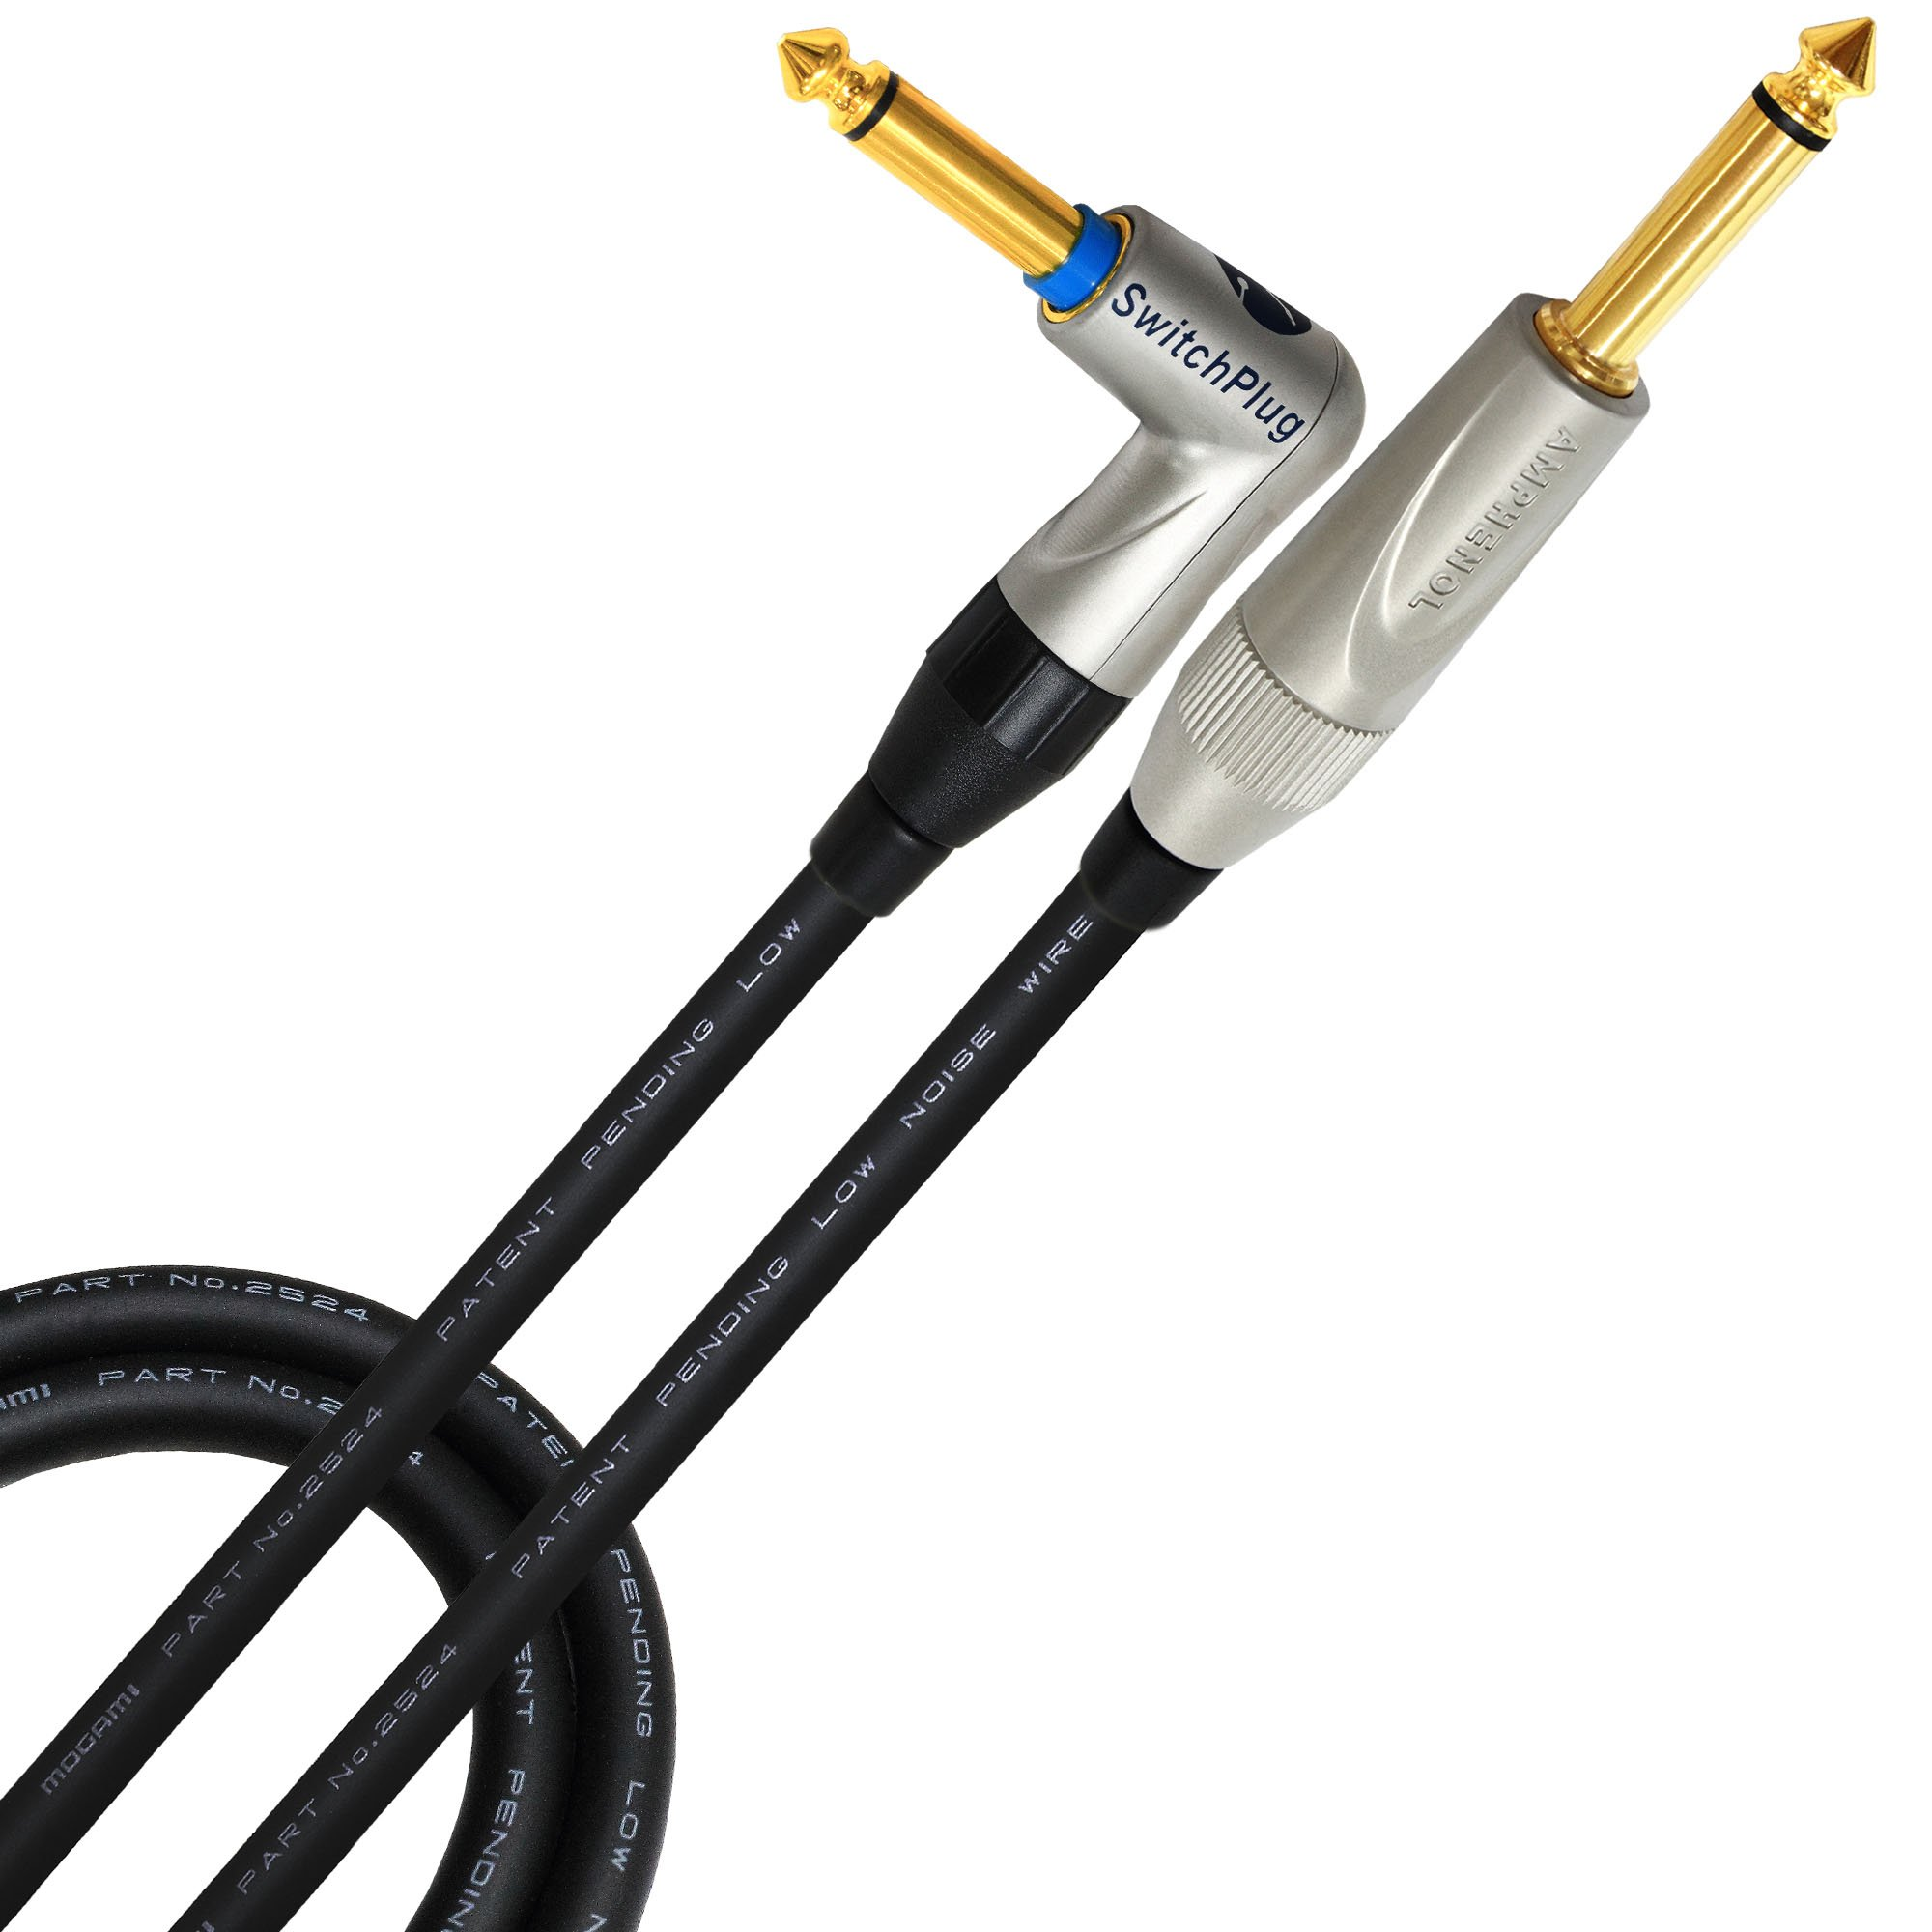 10 Foot - Guitar Bass Instrument Cable CUSTOM MADE By WORLDS BEST CABLES - using Mogami 2524 wire and Amphenol TM1RJ-AU (Silent) & TM2PN-AU ¼ Inch (6.35mm) TS Plugs